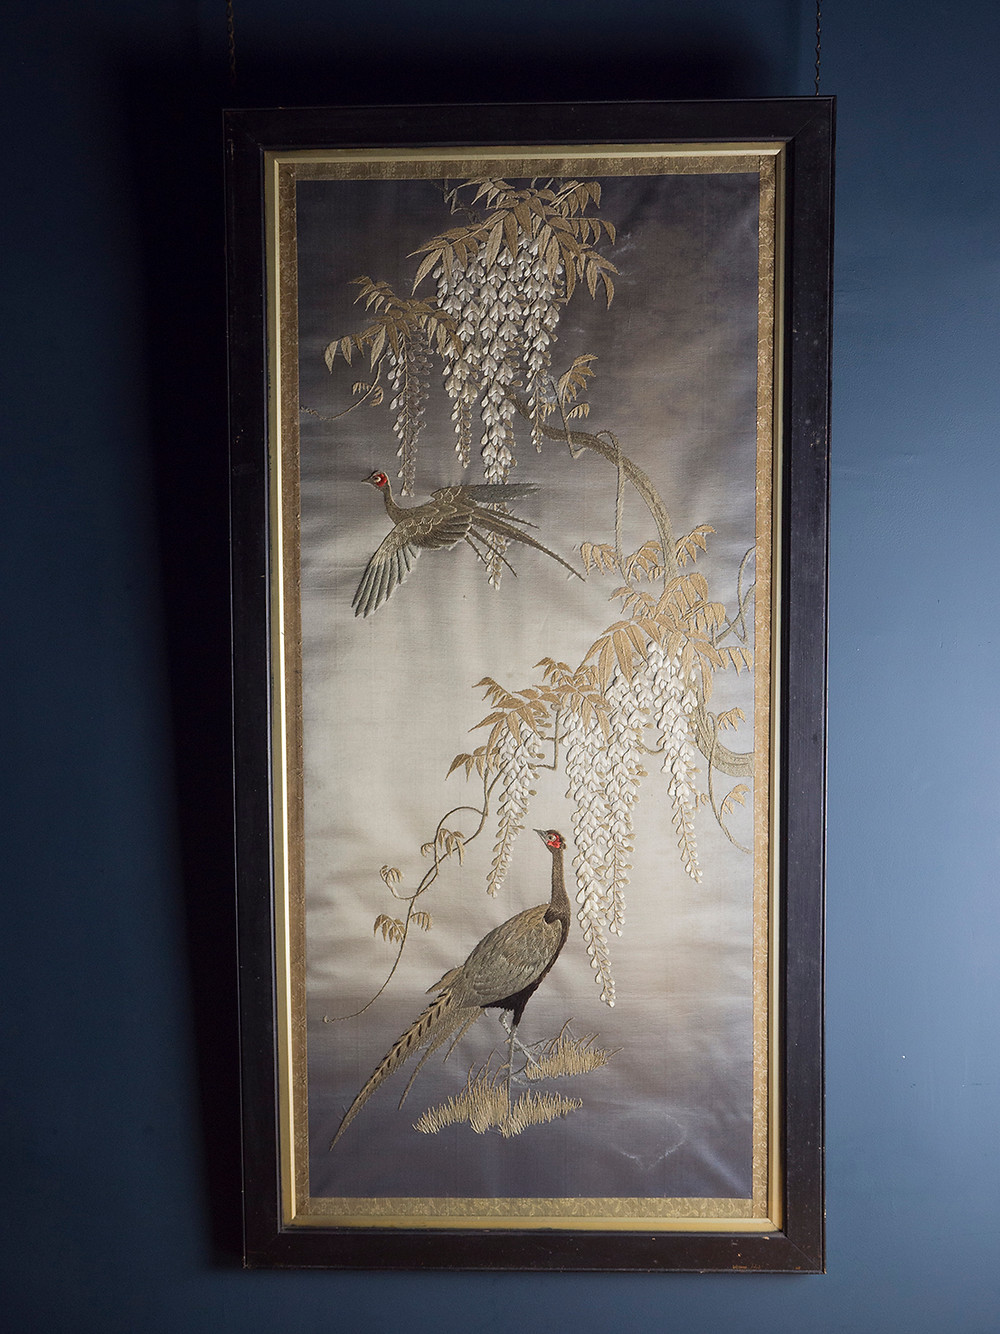 a late meiji period japanese embroidery in it's original frame